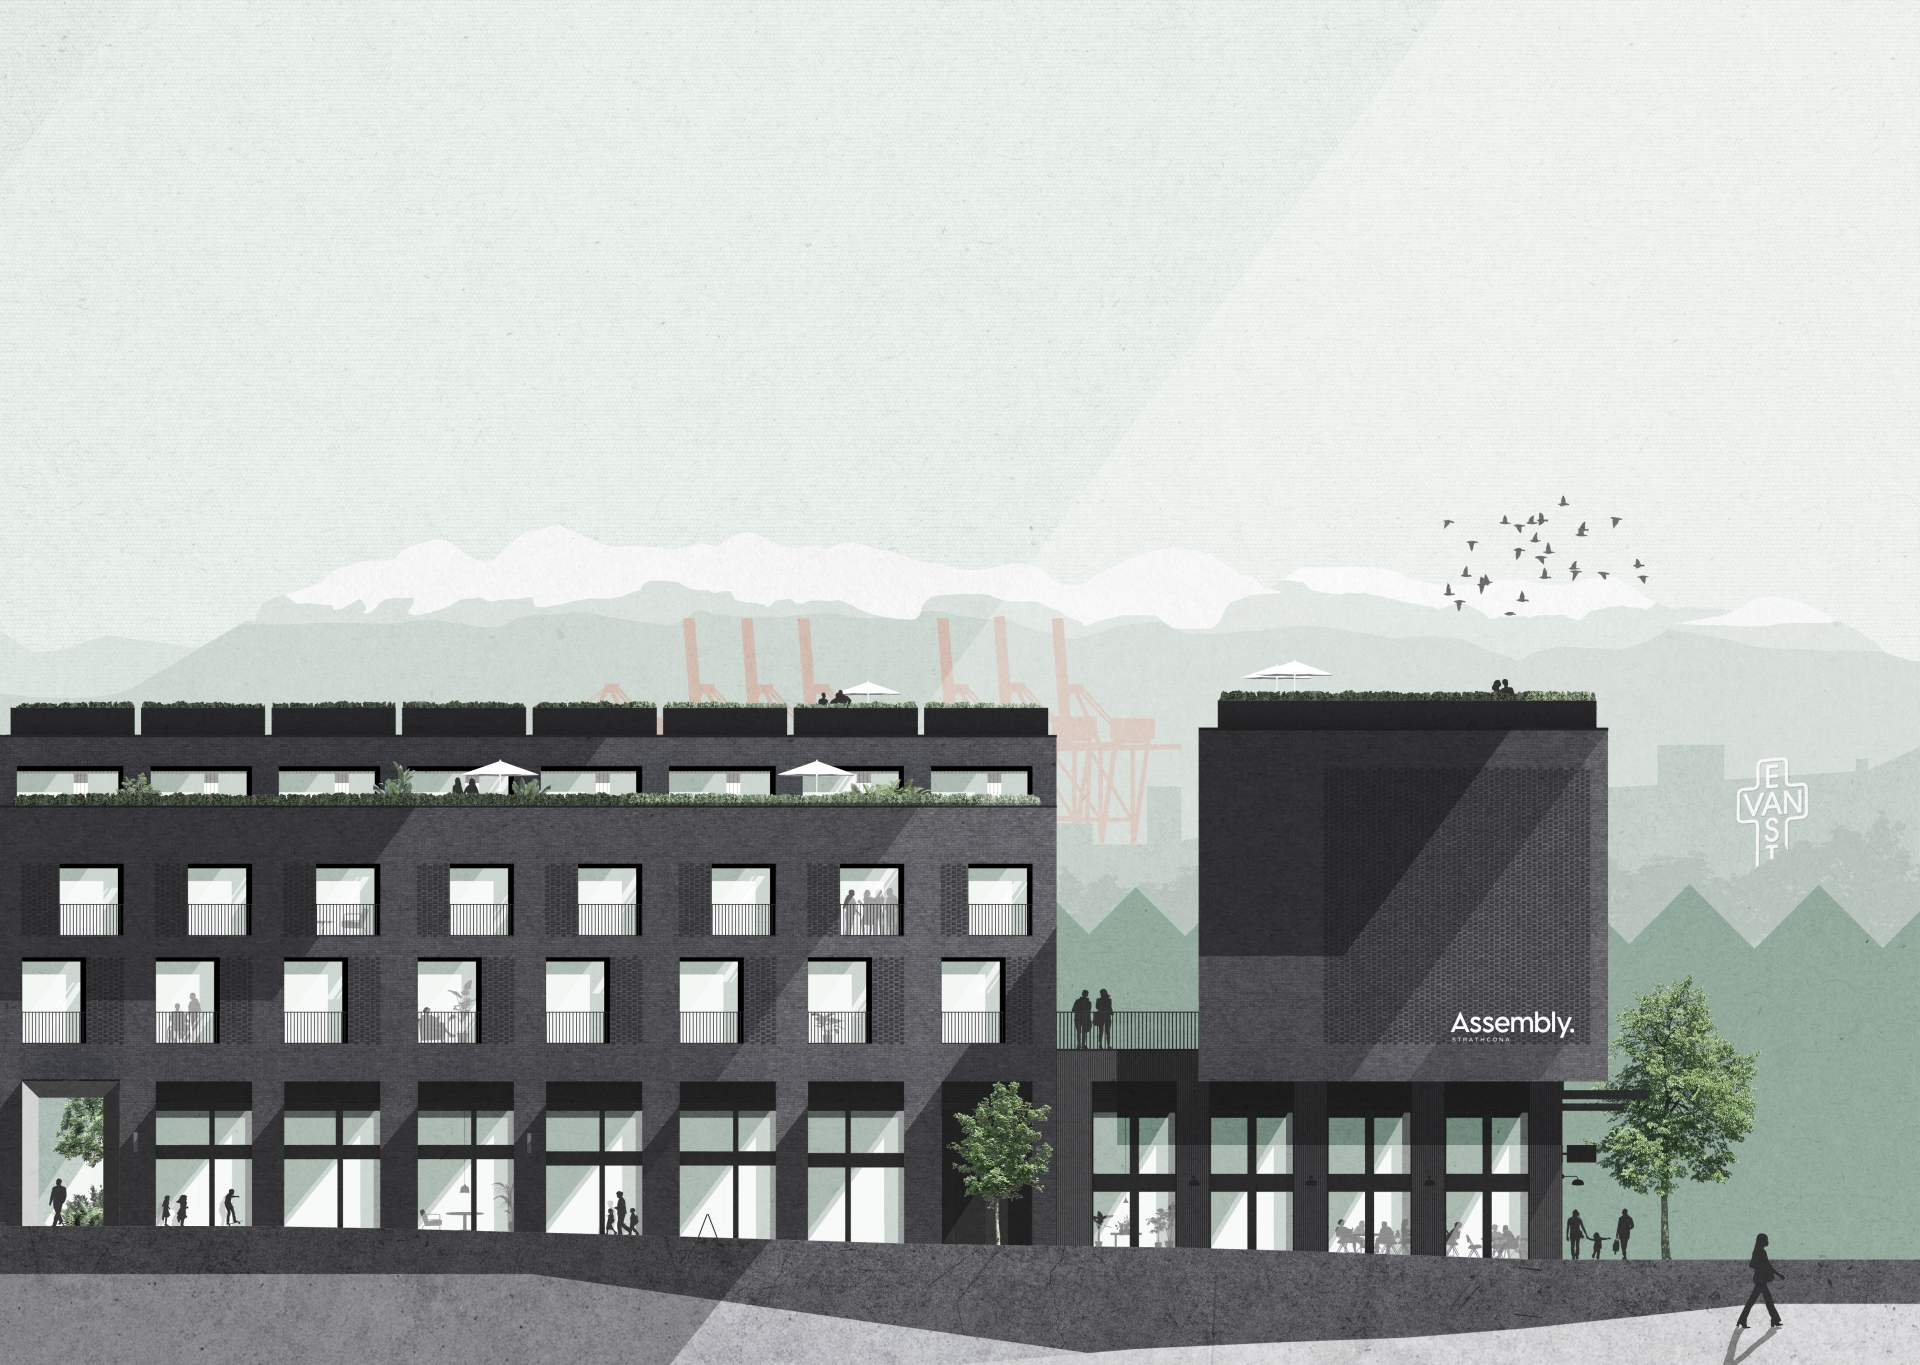 Rendering of Assembly 5-storey building street view